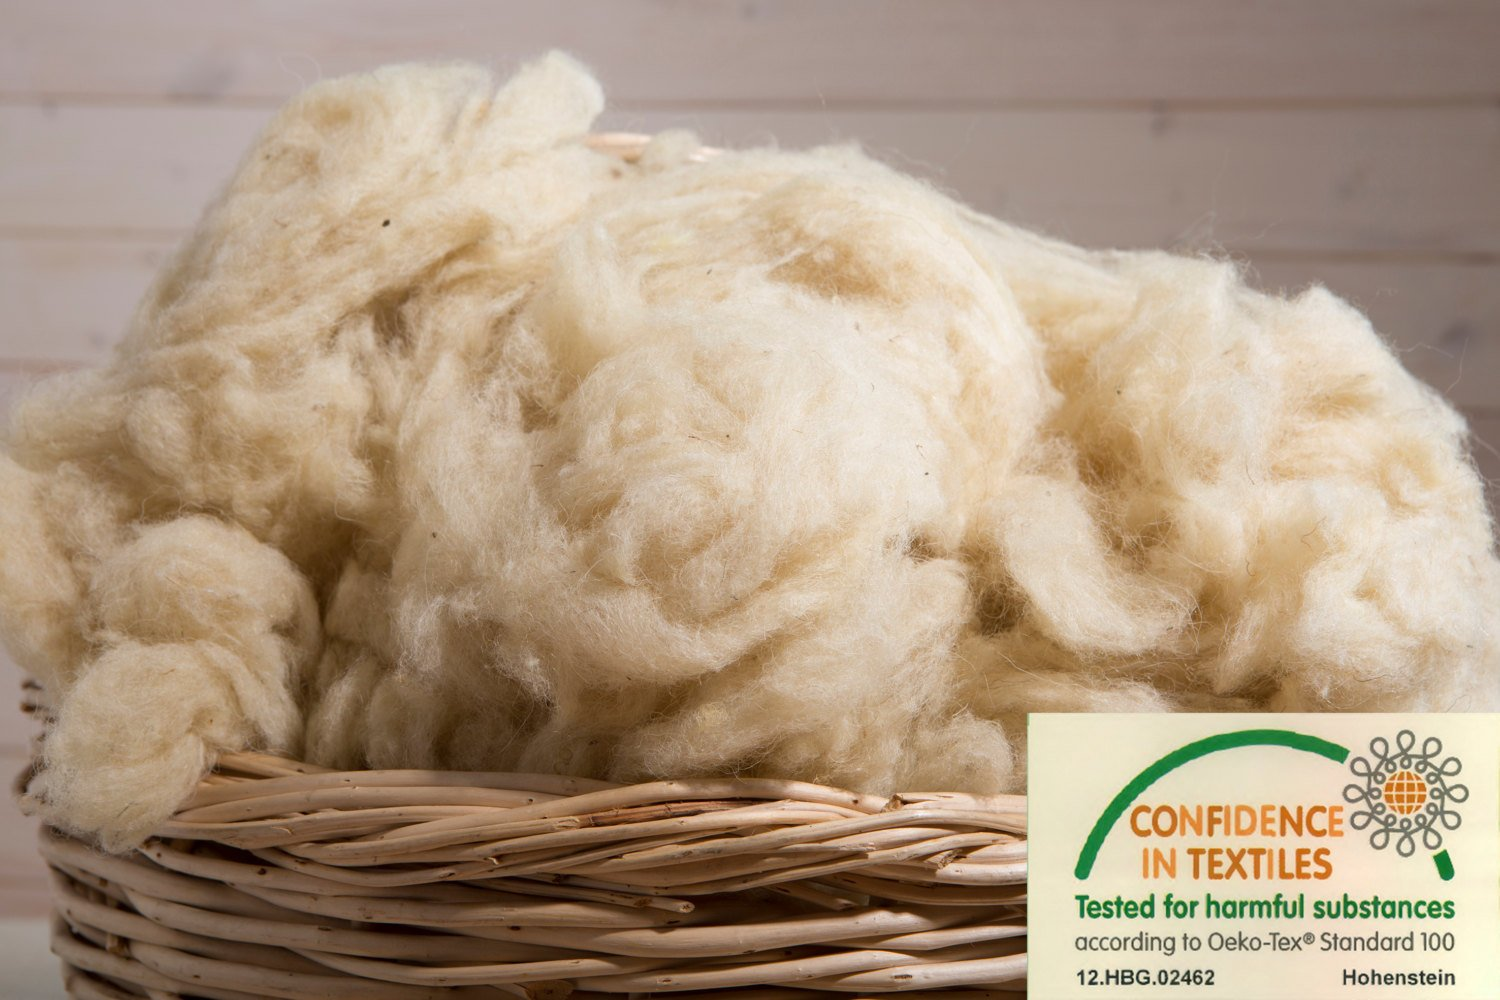 100% Natural Wool Stuffing / Washed and Carded / OEKO-TEX Certified / 2 Pounds Home Of Wool 4337013734